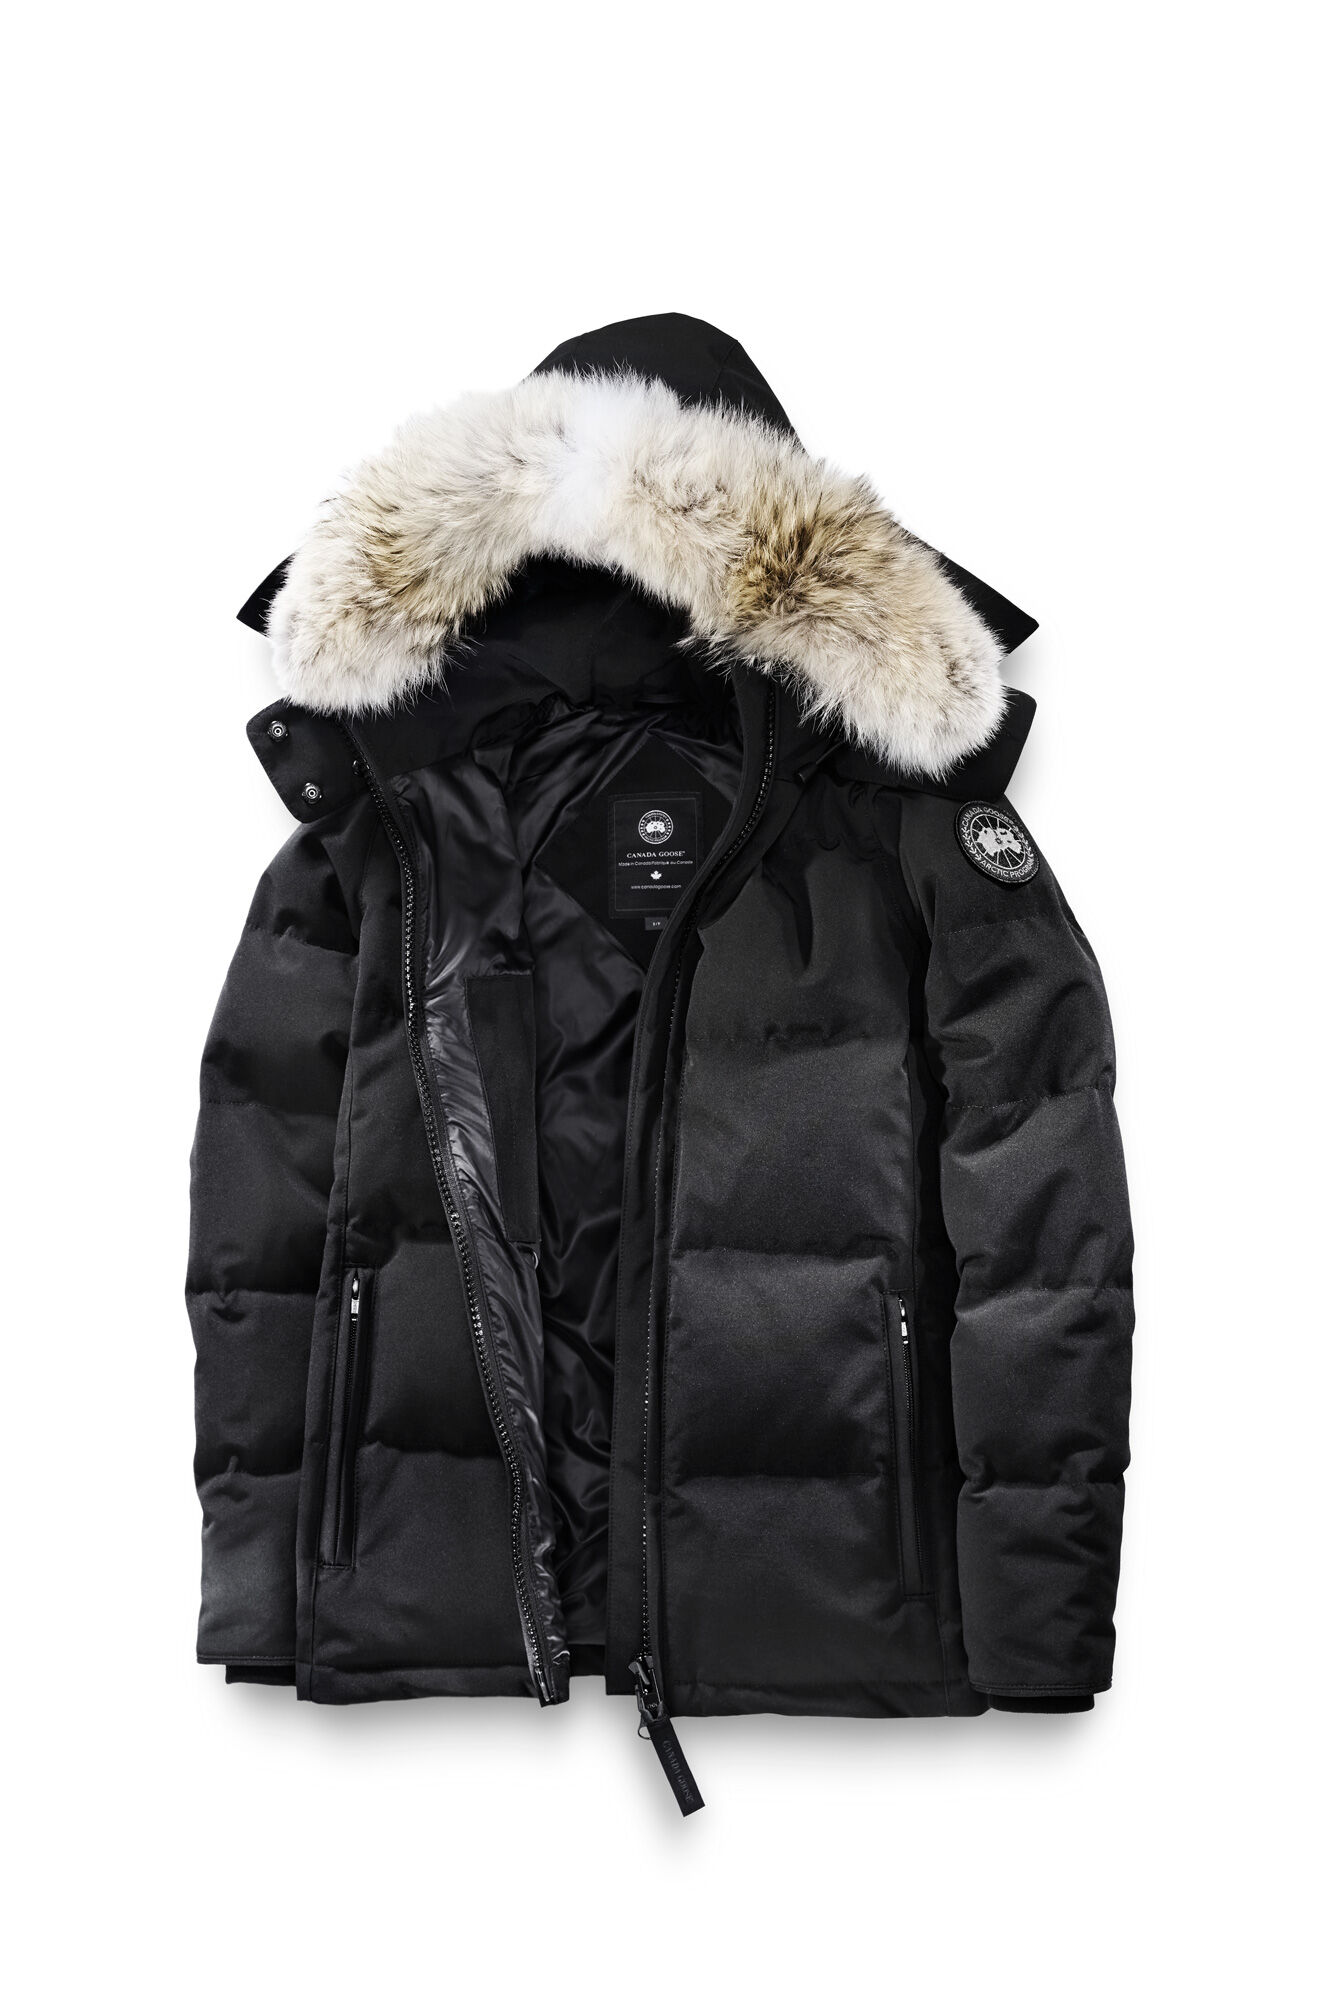 fashion notes learn to feel heart go out to the bomber jacket cheap canada goose canada. Black Bedroom Furniture Sets. Home Design Ideas